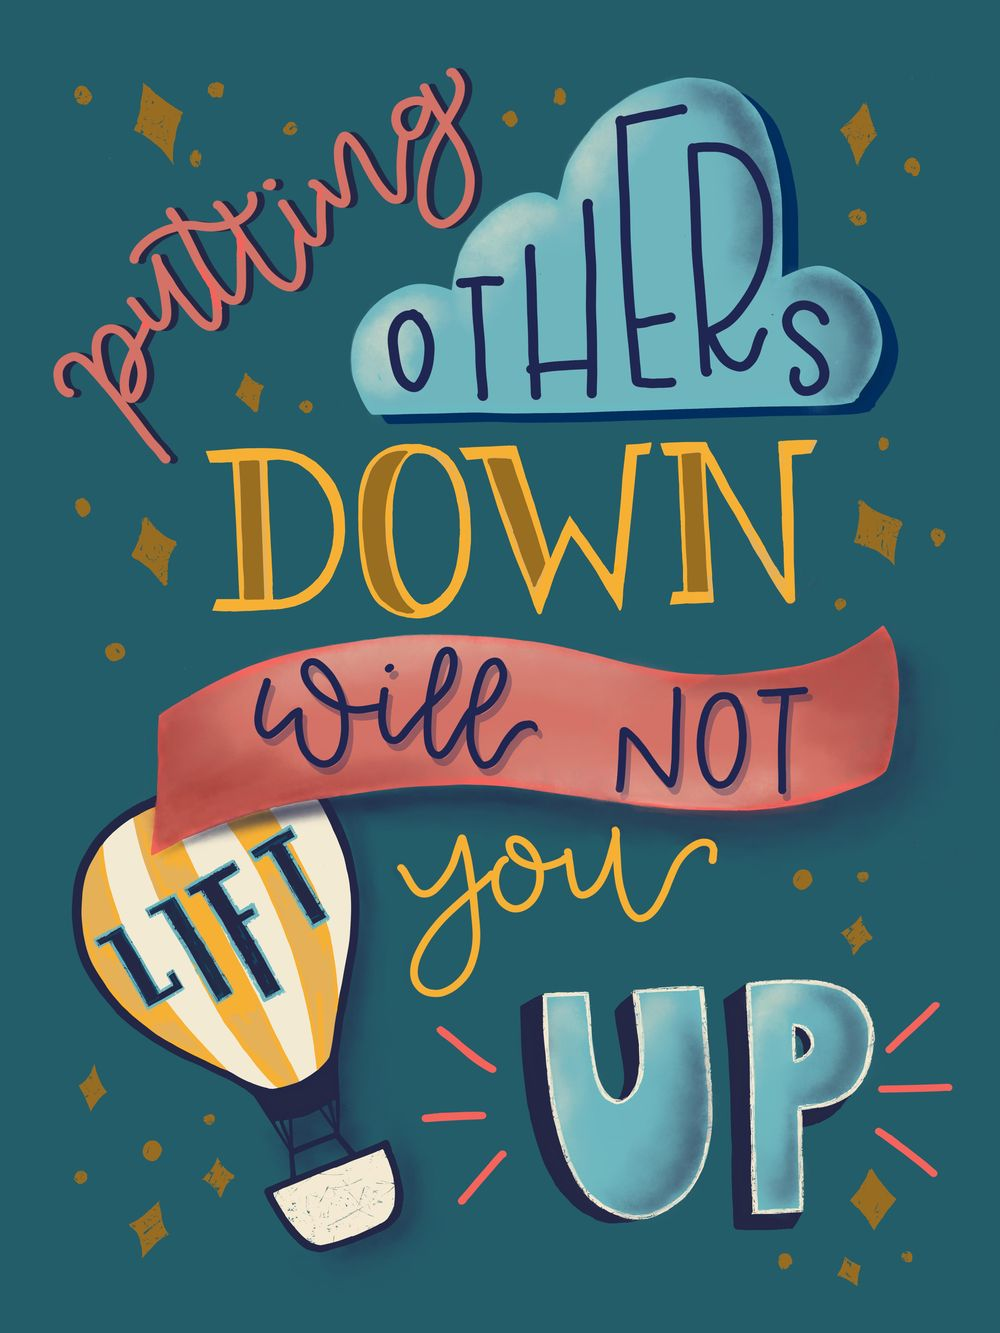 Lift Others Up - image 1 - student project